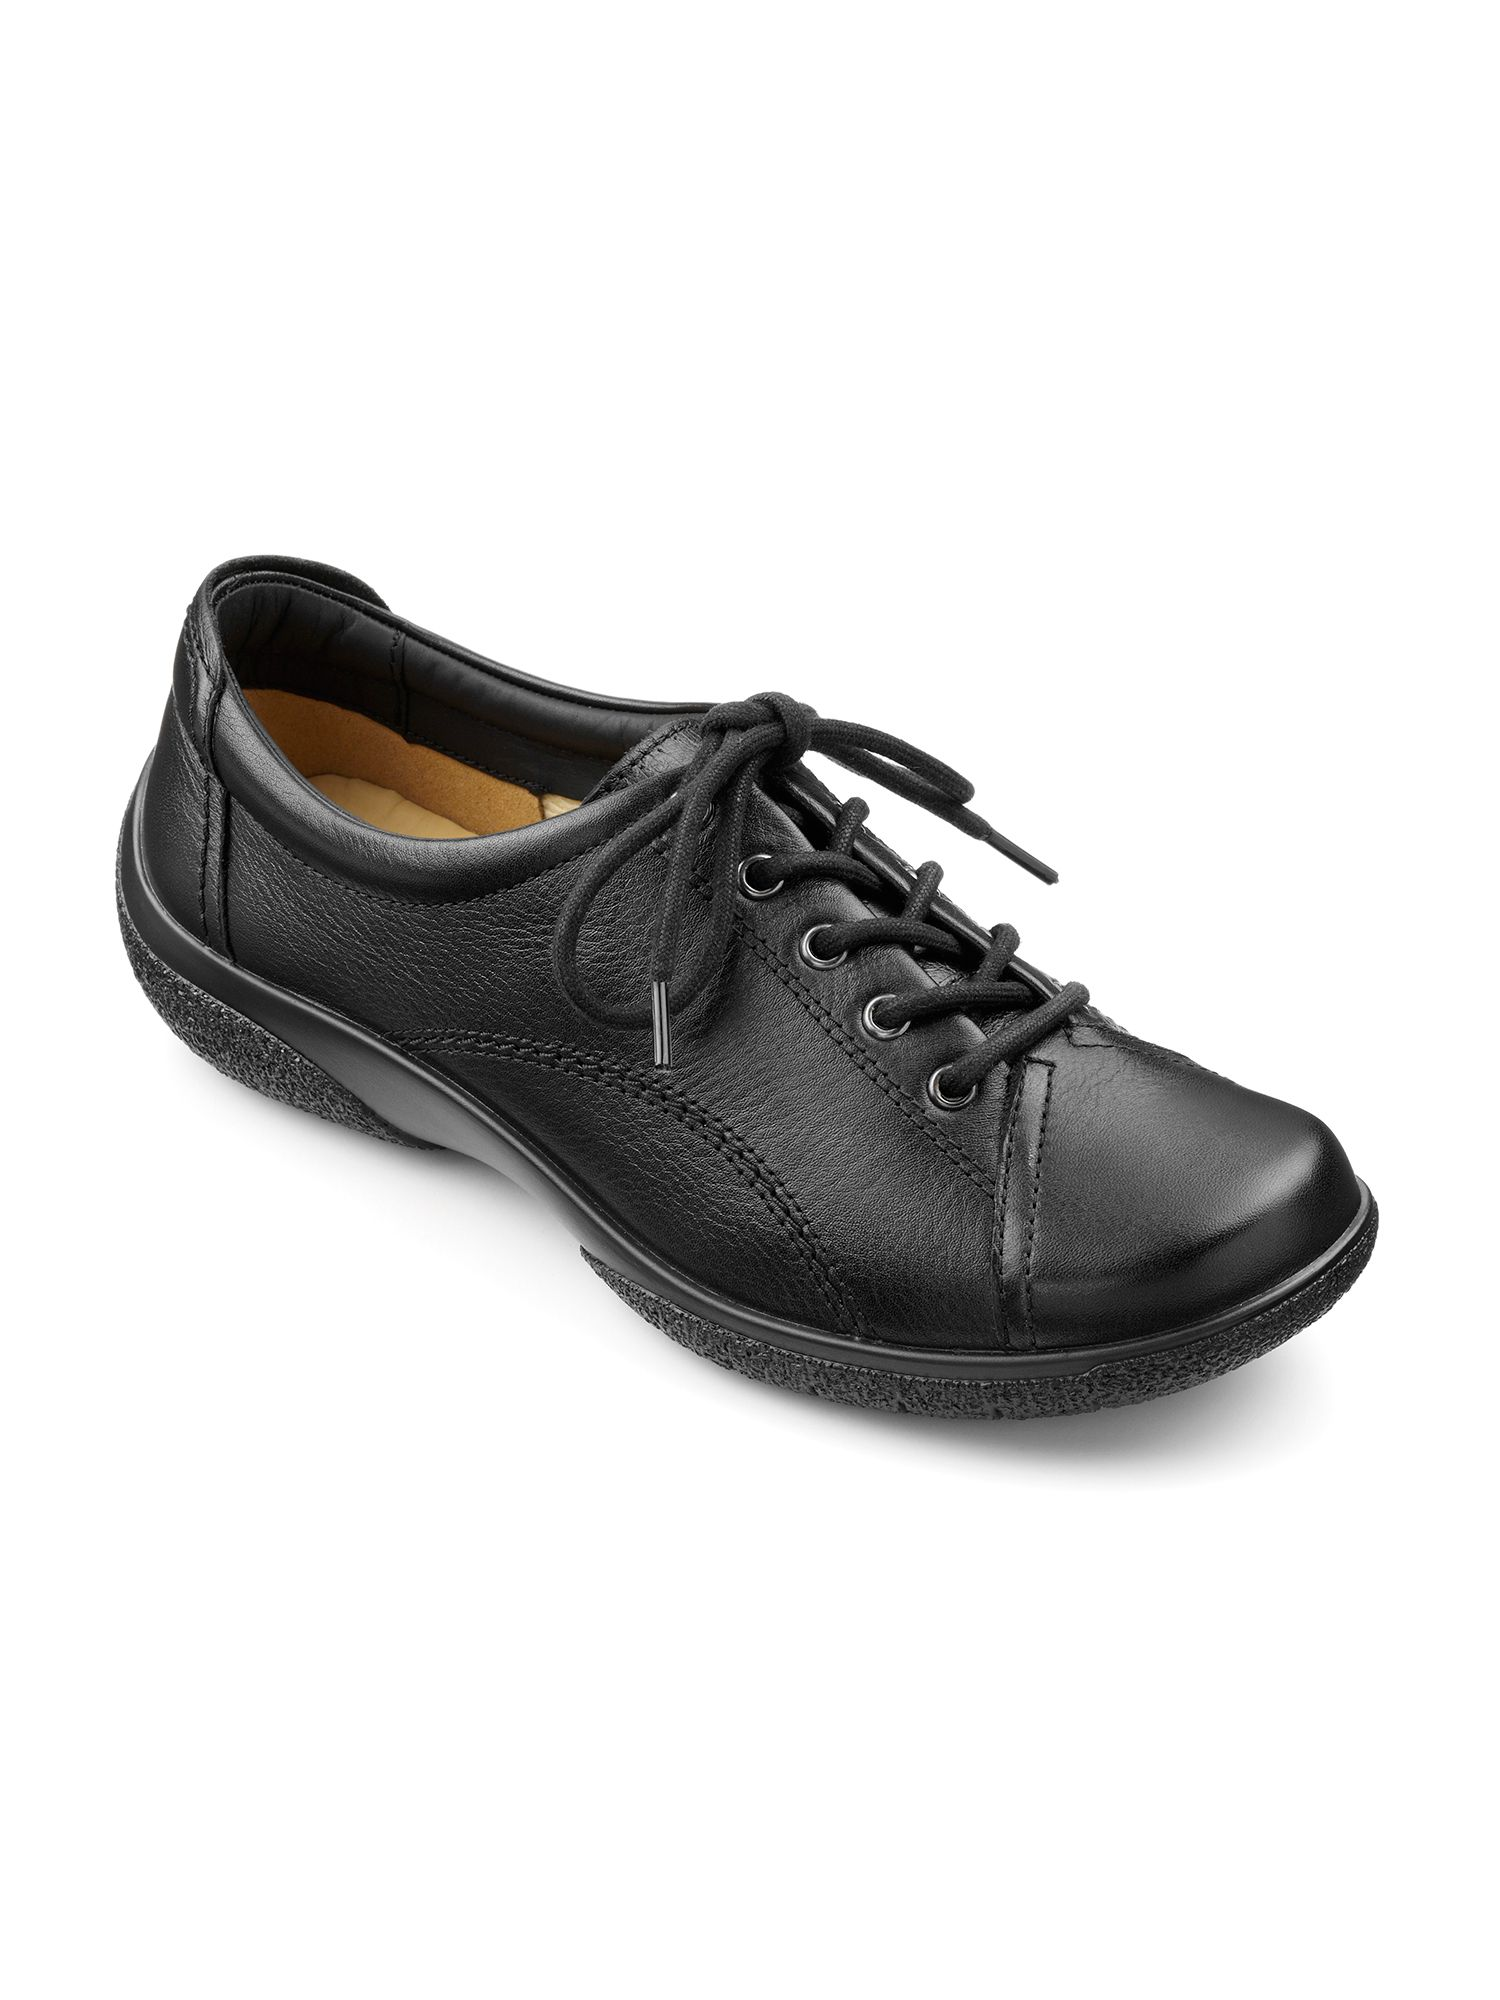 Hotter Dew original extra wide shoes, Black